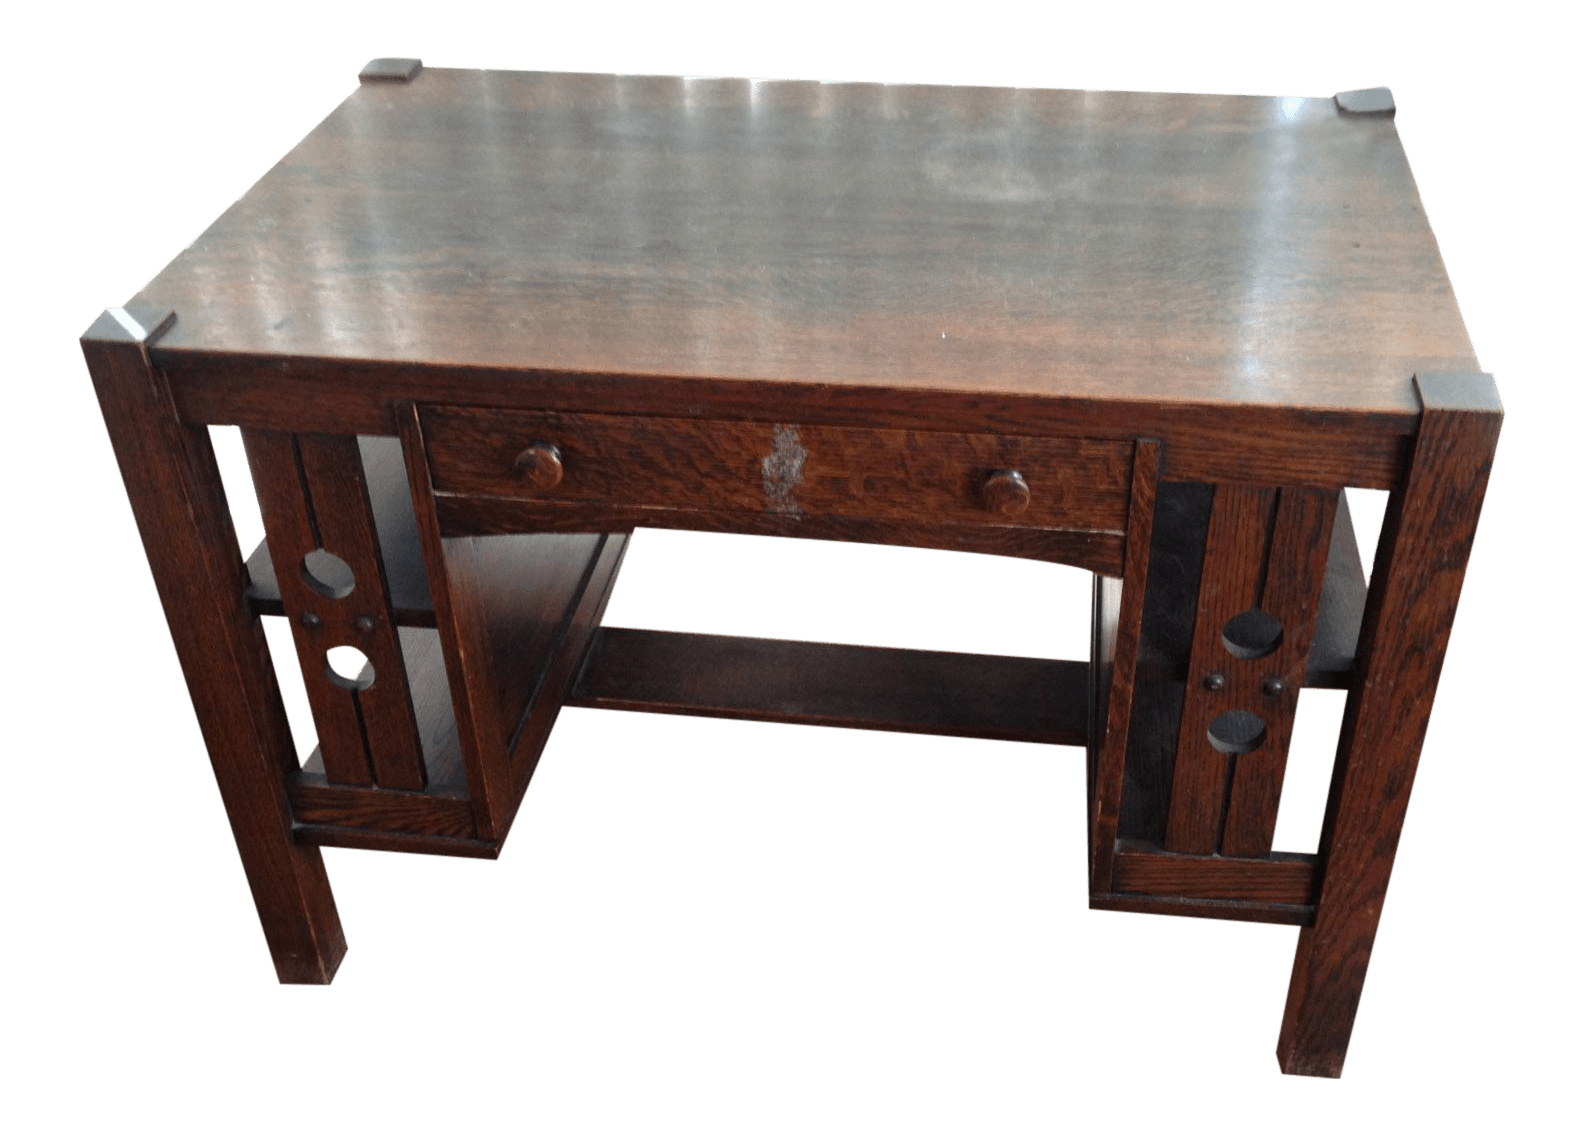 Antique Mission Oak Arts And Crafts Library Desk With Shelves Chairish